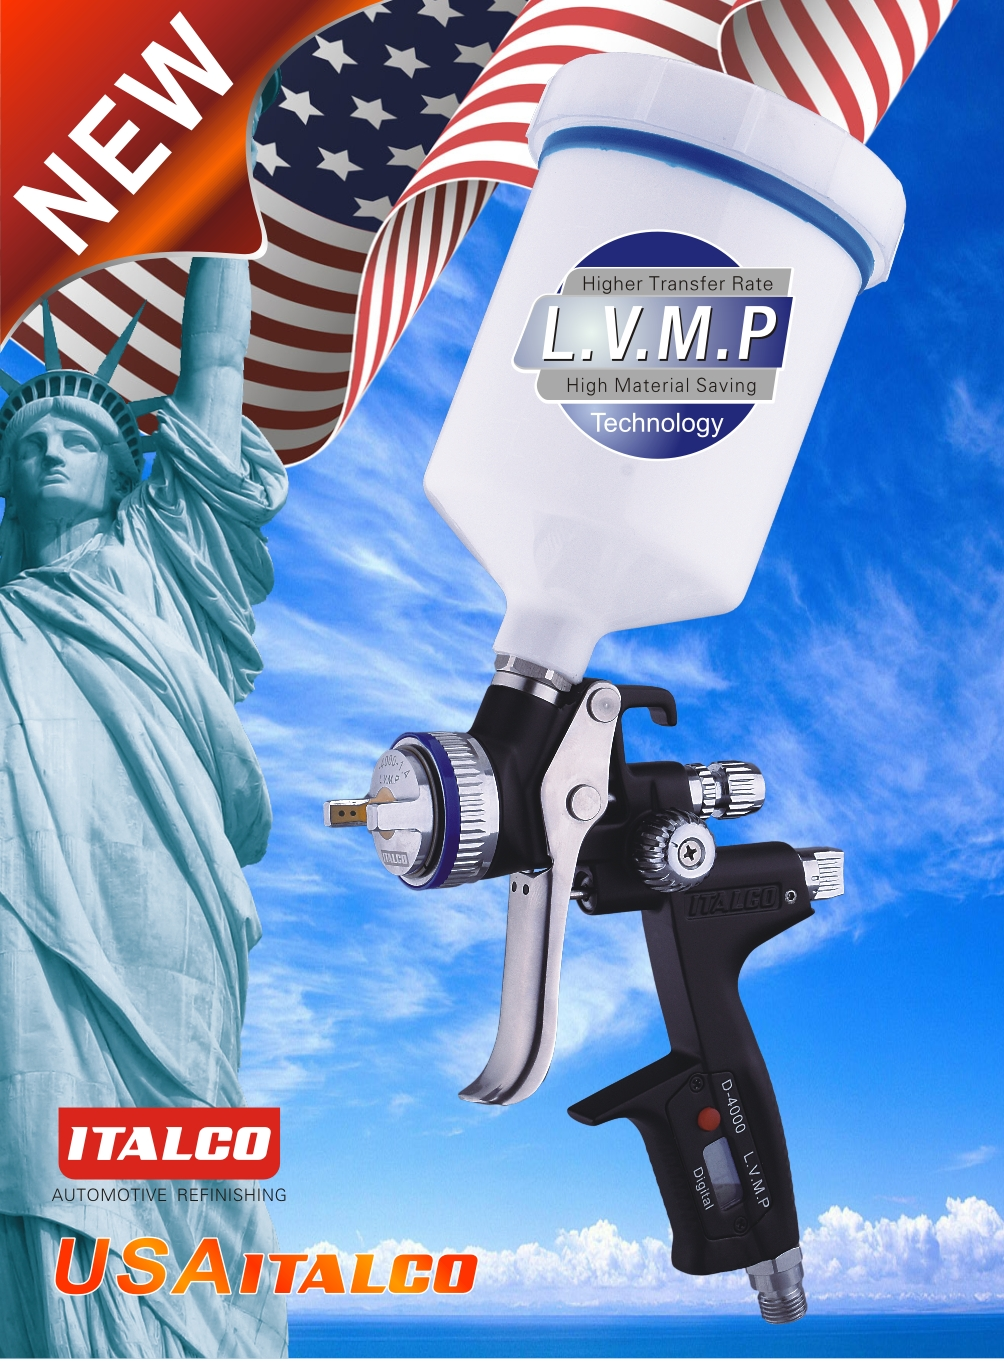 D-4000 L.V.M.P Digital Spray Gun